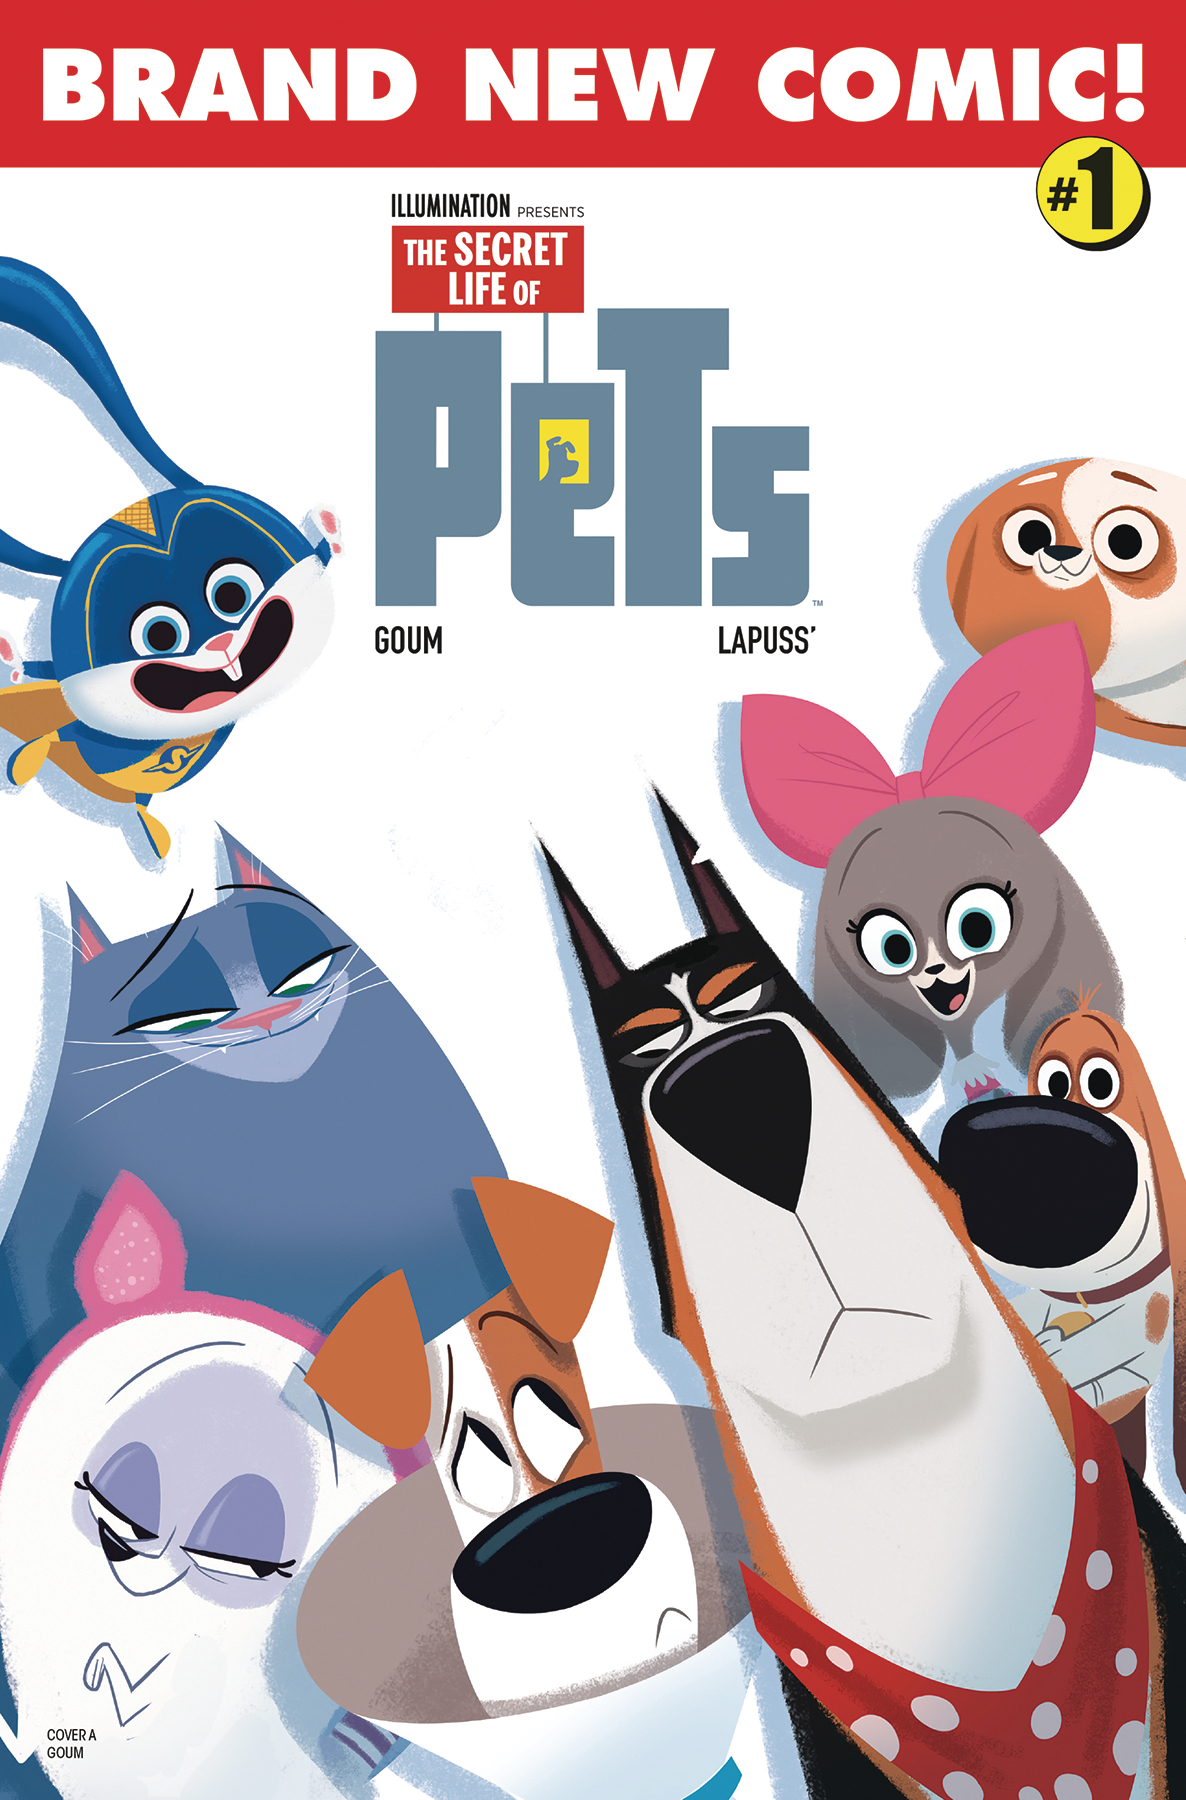 SECRET LIFE OF PETS VOL 2 #1